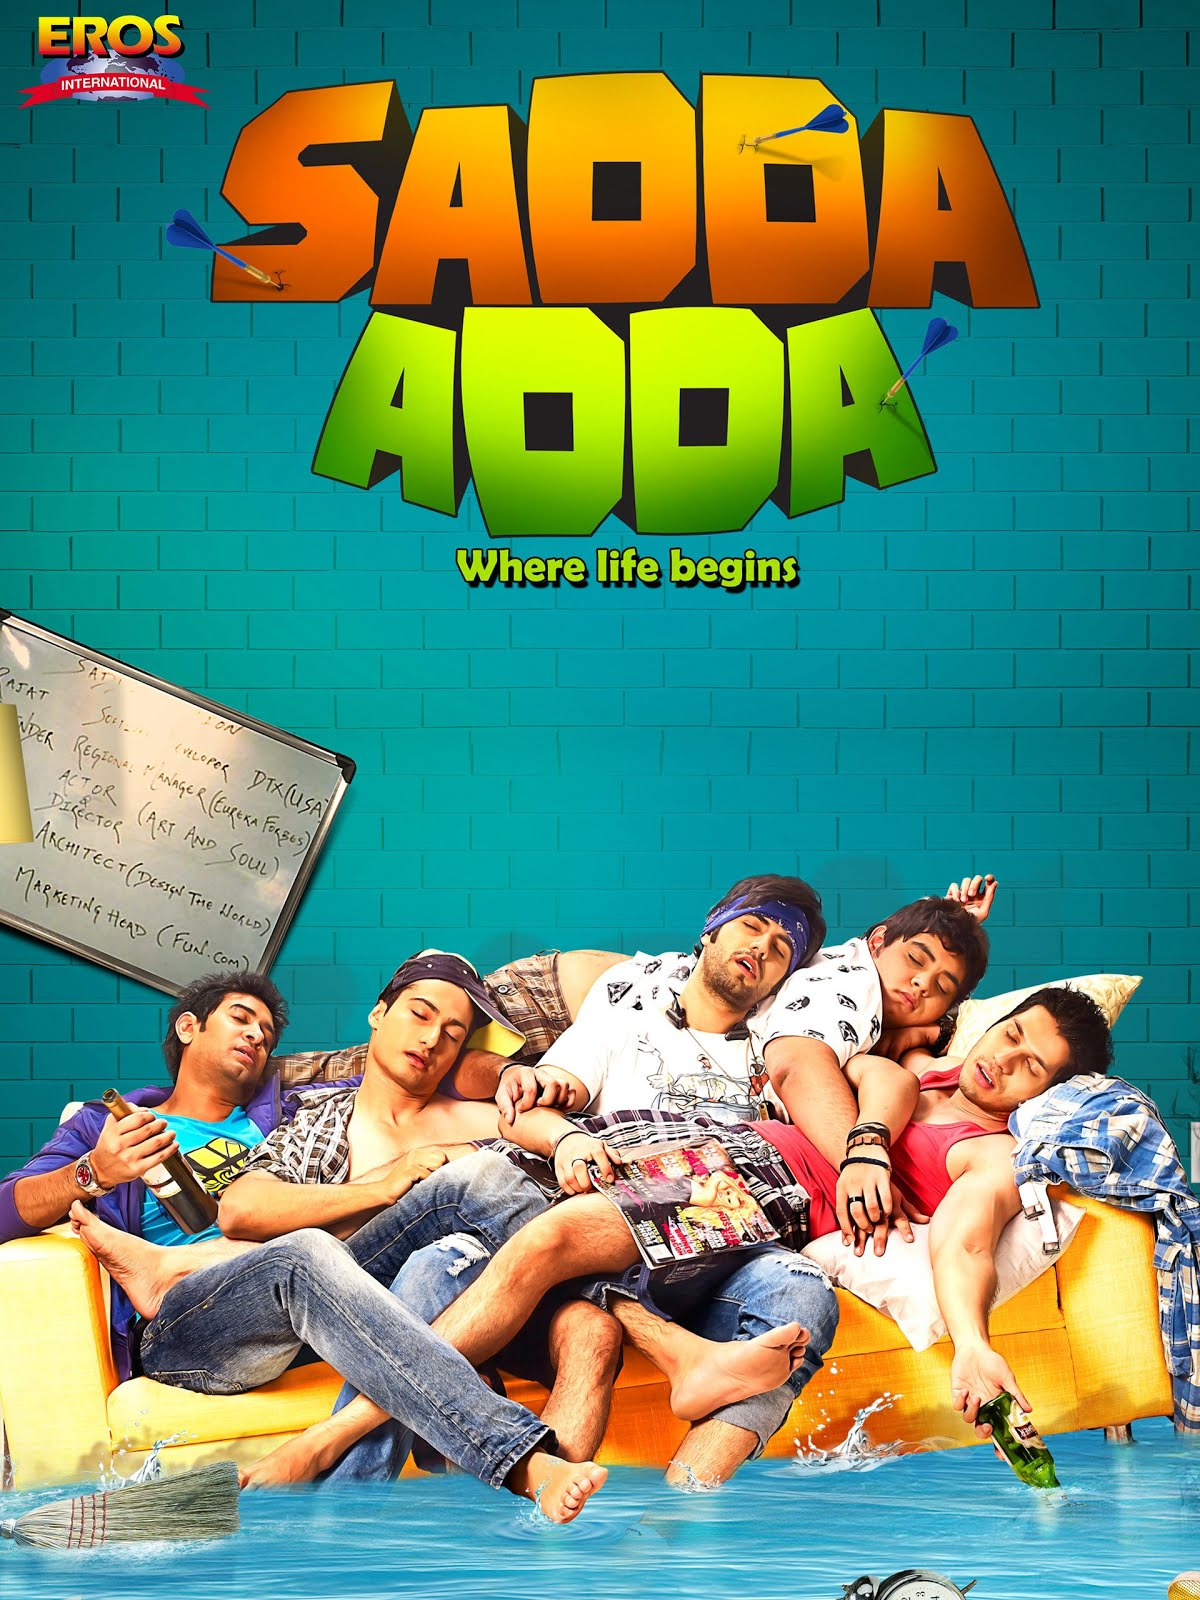 Sadda Adda 2012 full hd Hindi Movie 480p HDRip 350MB ESubs